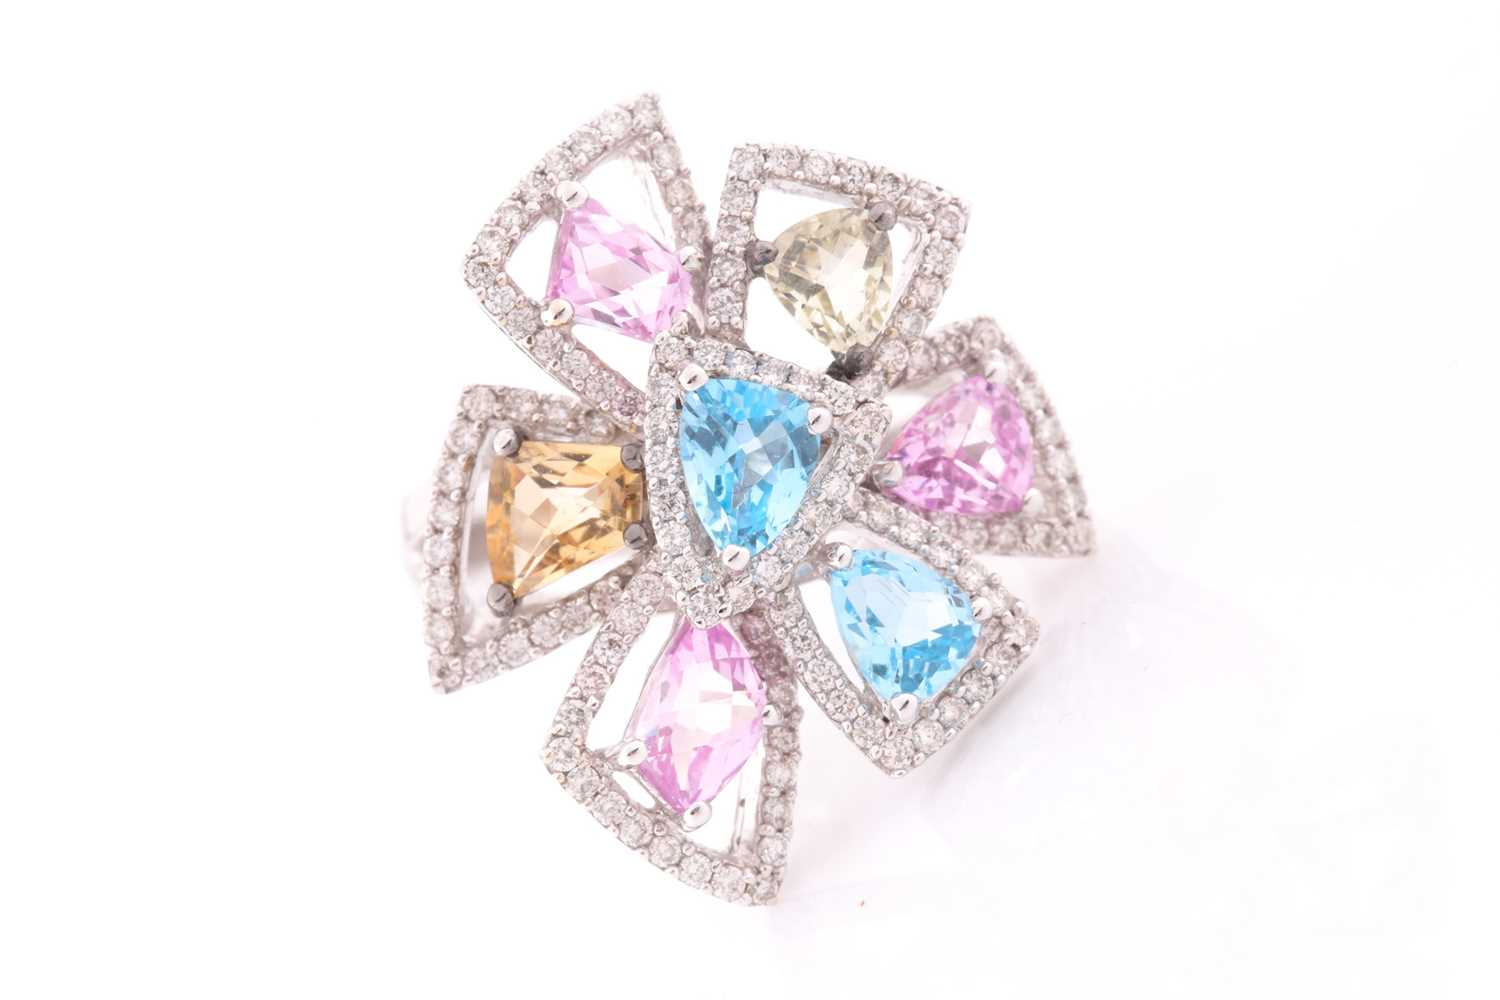 An 18ct white gold, diamond, and multi-coloured topaz ring of geometric floral form, the openwork